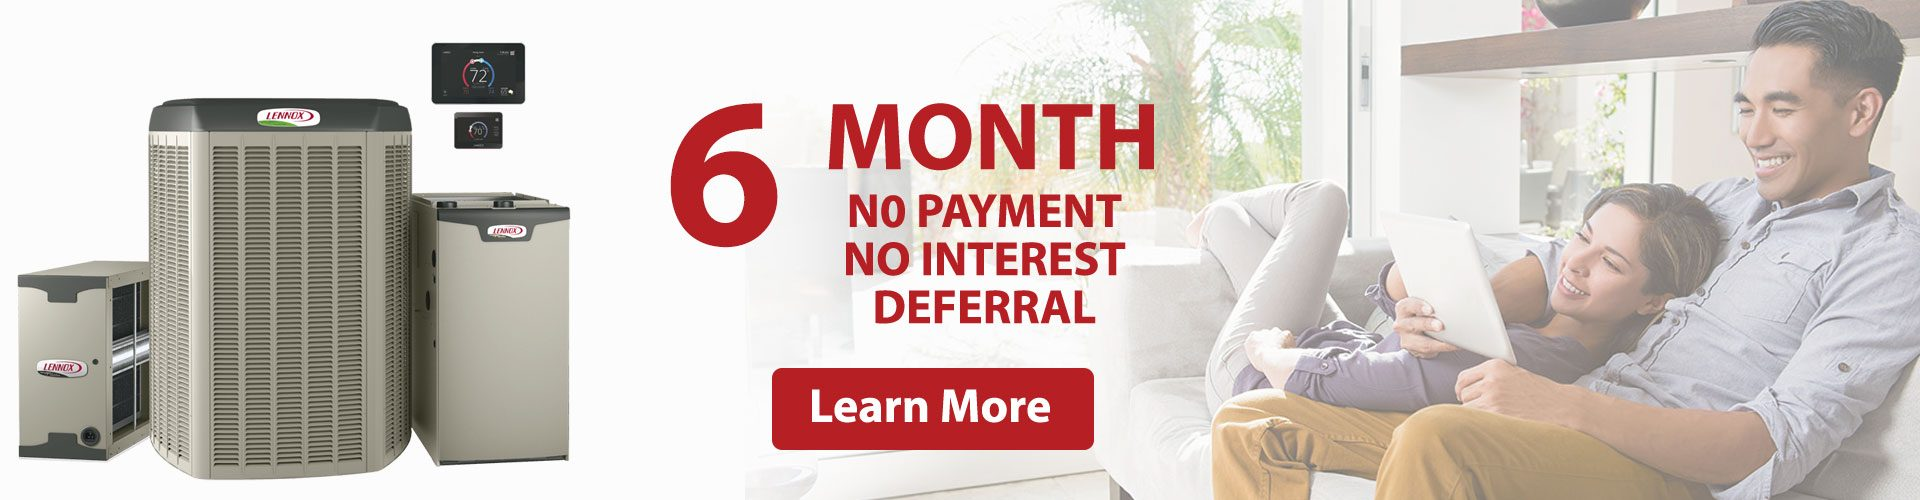 6 month, no payments